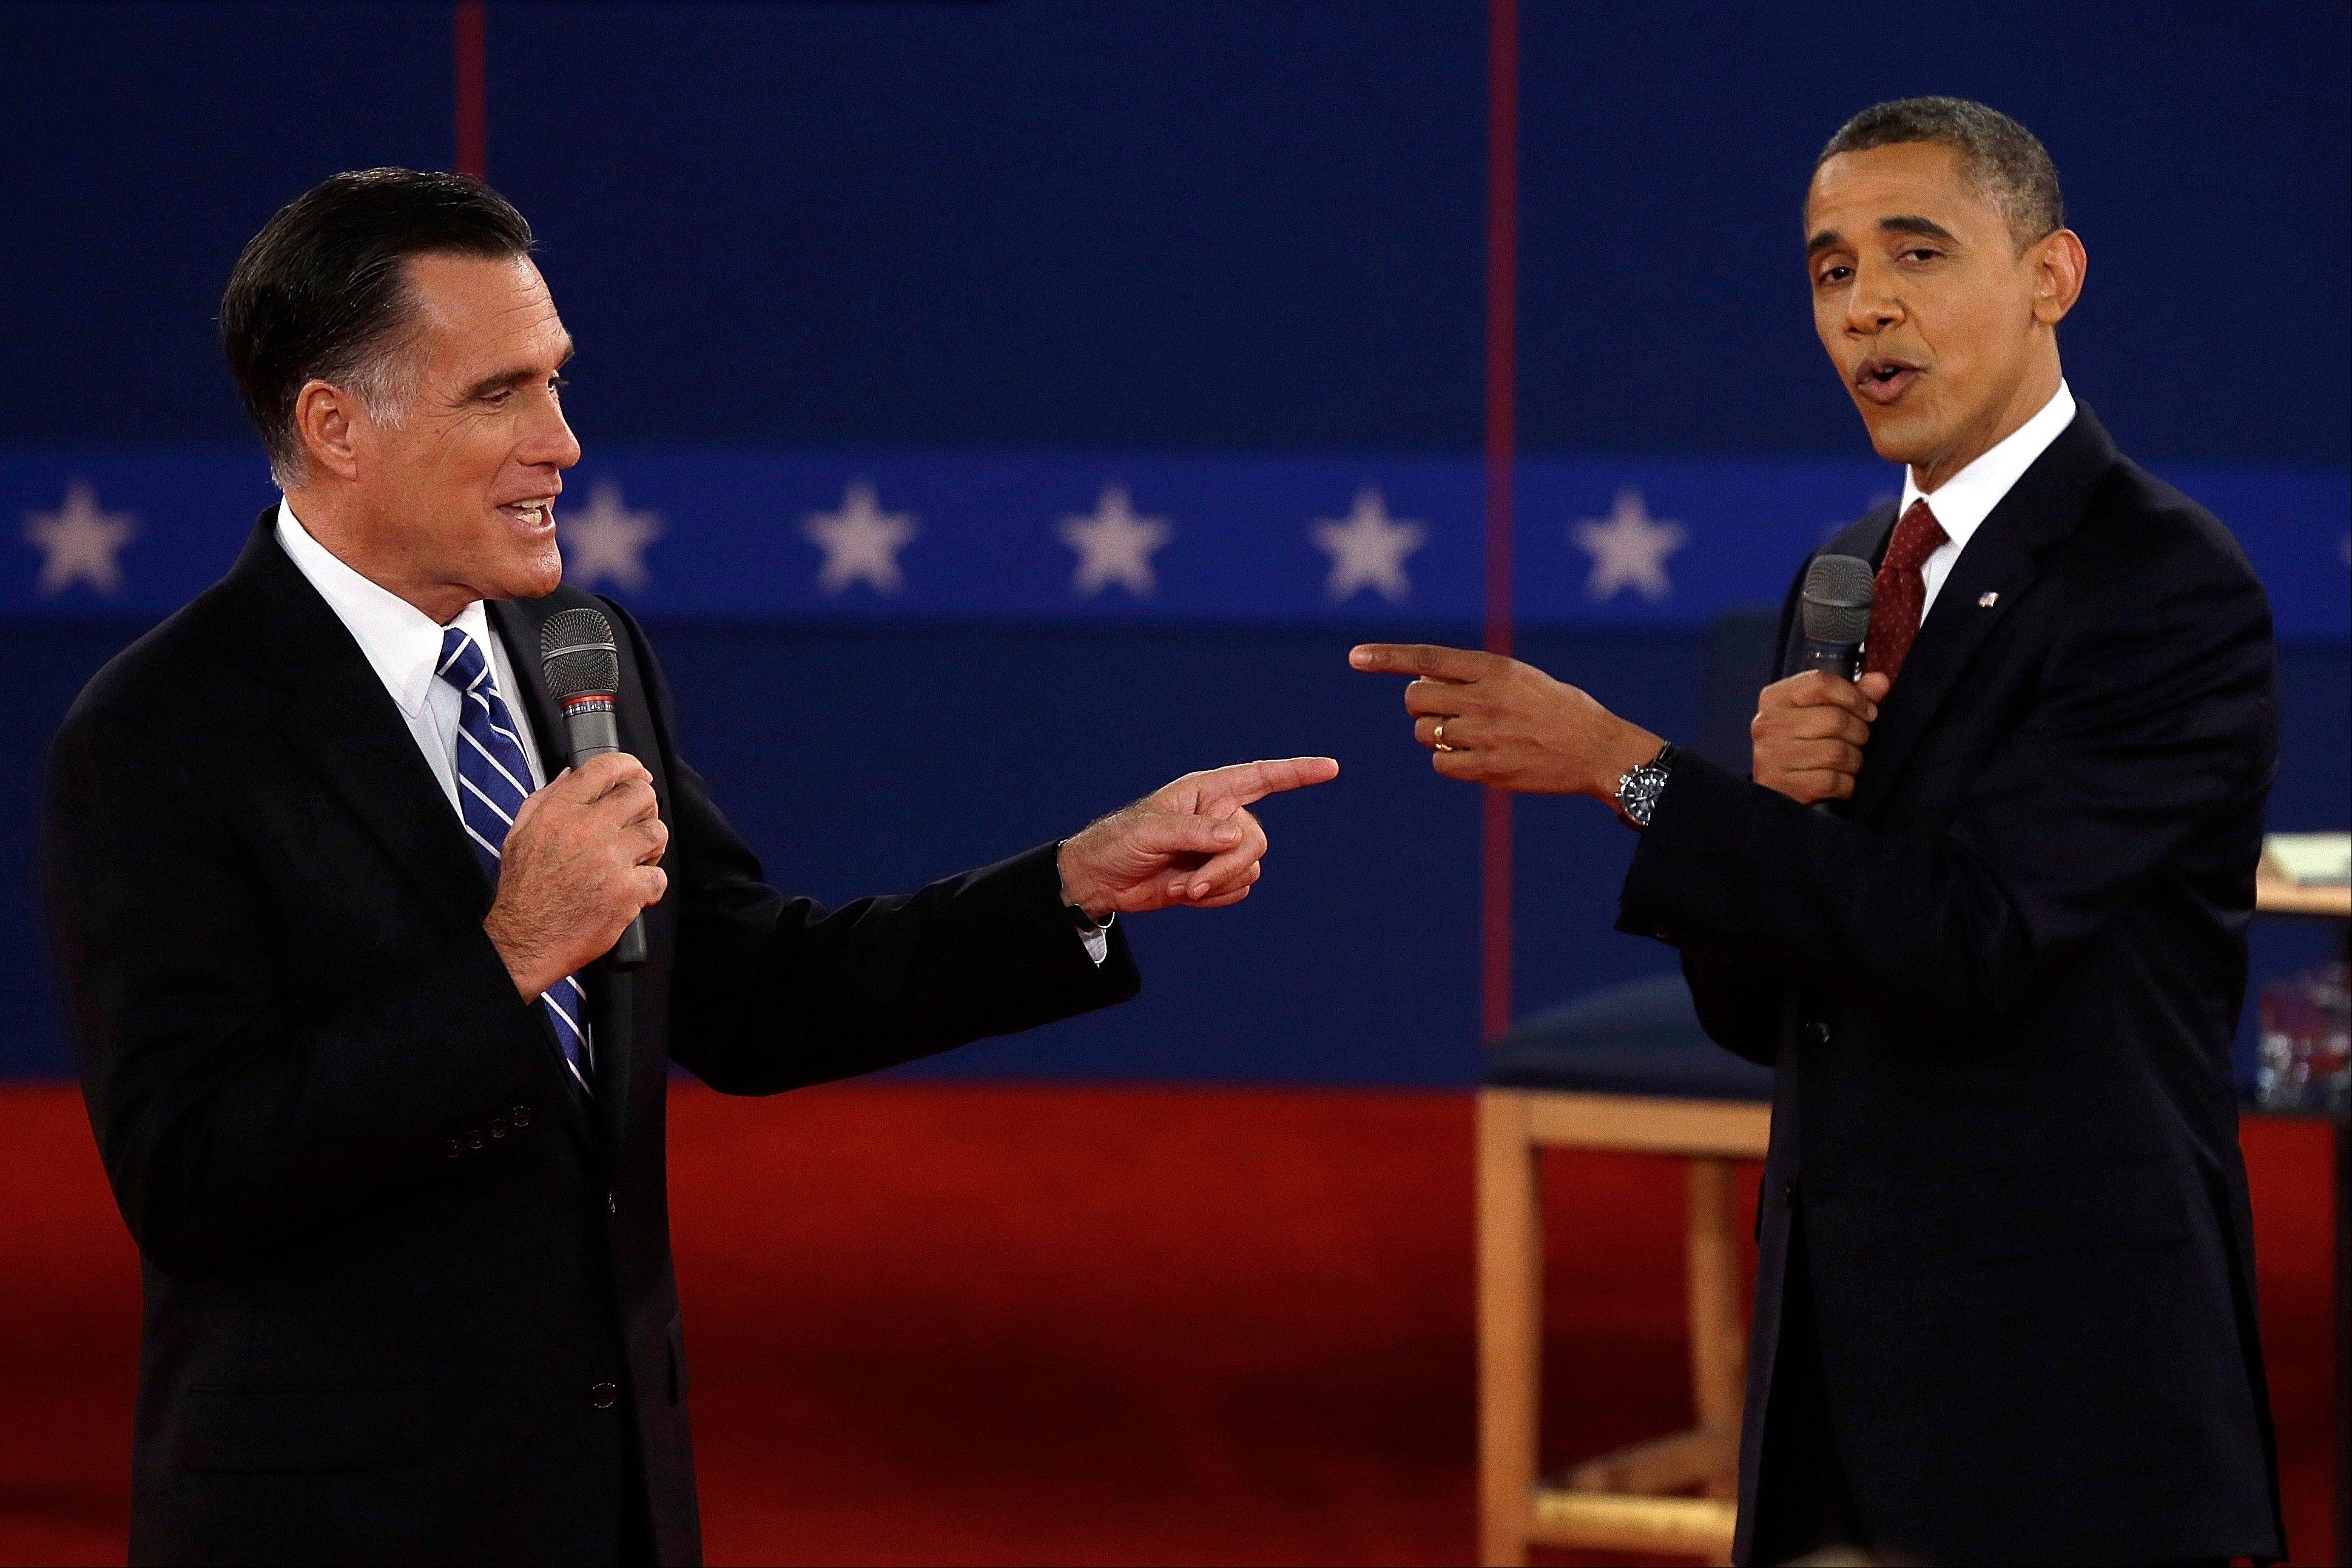 Republican presidential nominee Mitt Romney and President Barack Obama spar during the second presidential debate at Hofstra University on Tuesday in Hempstead, N.Y.